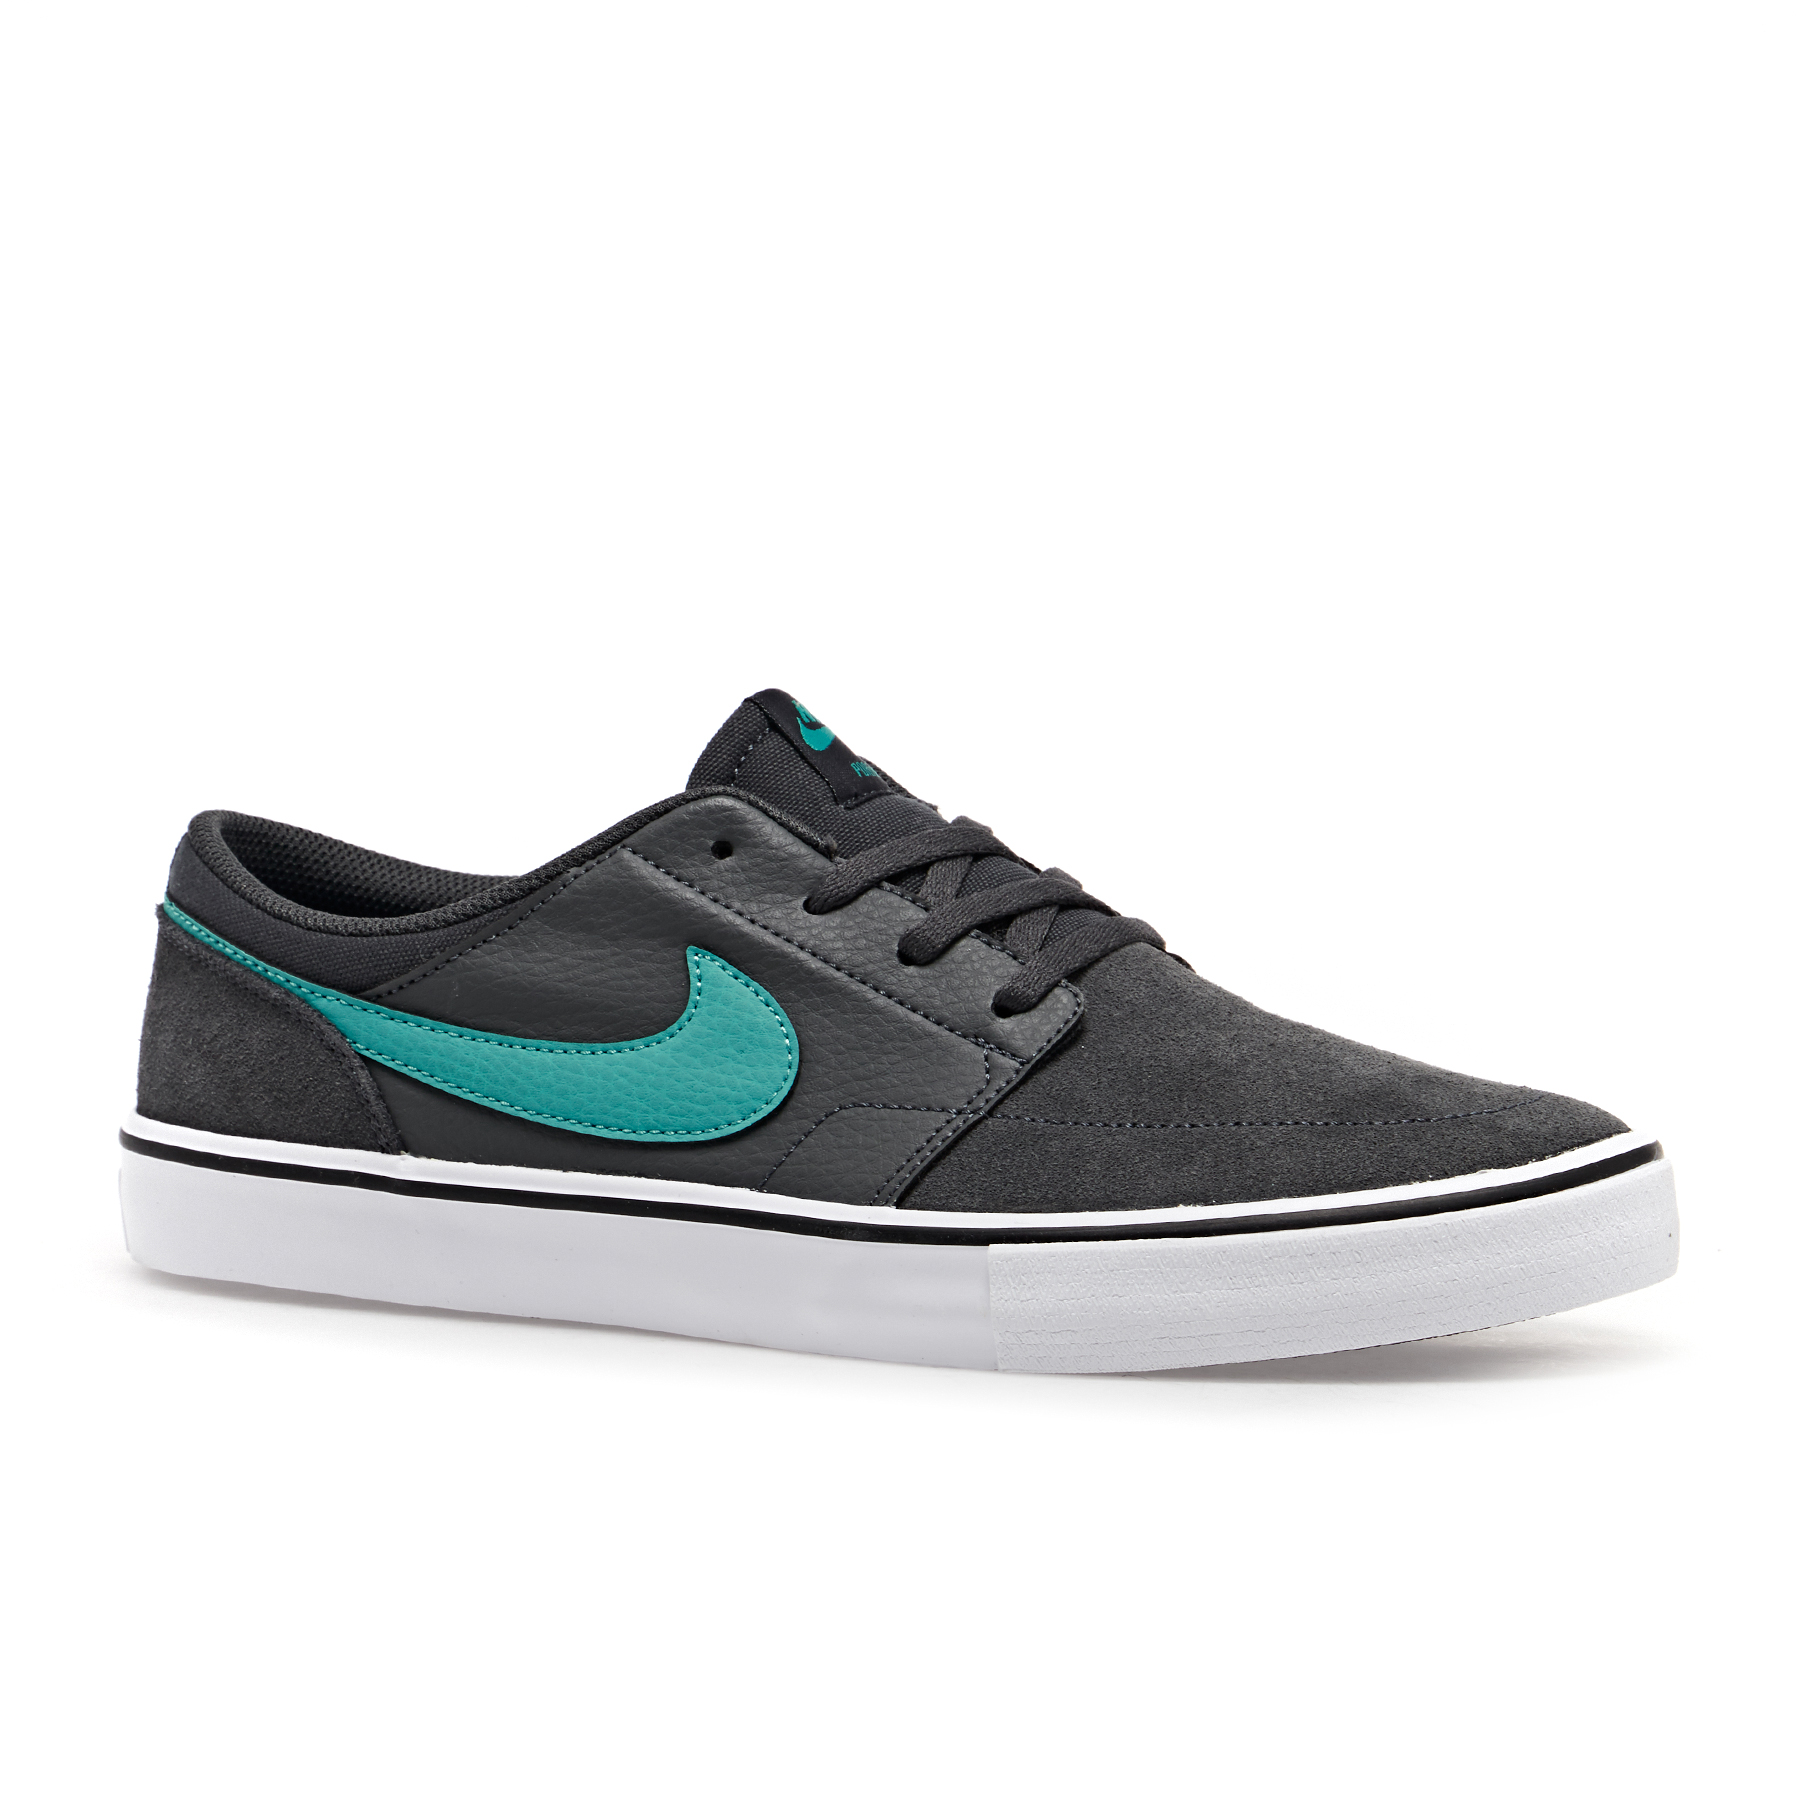 Nike Skateboarding Clothing & Shoes | Nike SB Surfdome UK